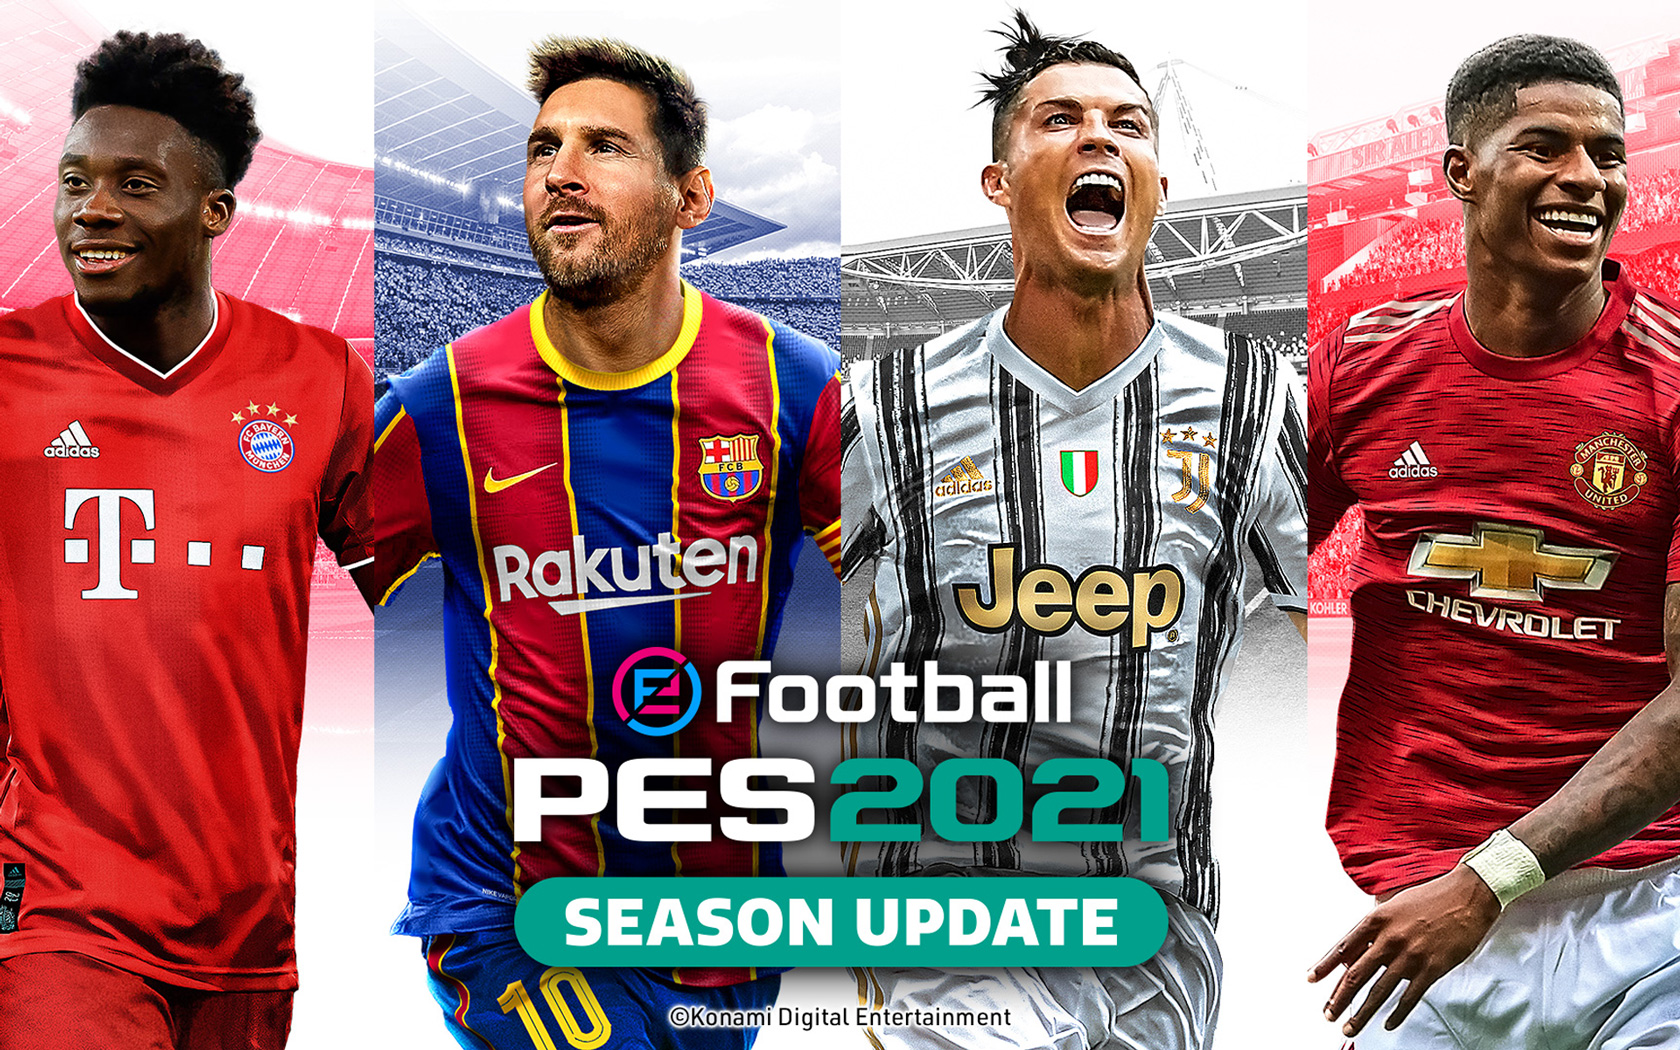 Free eFootball PES 2021 Wallpaper in 1680x1050